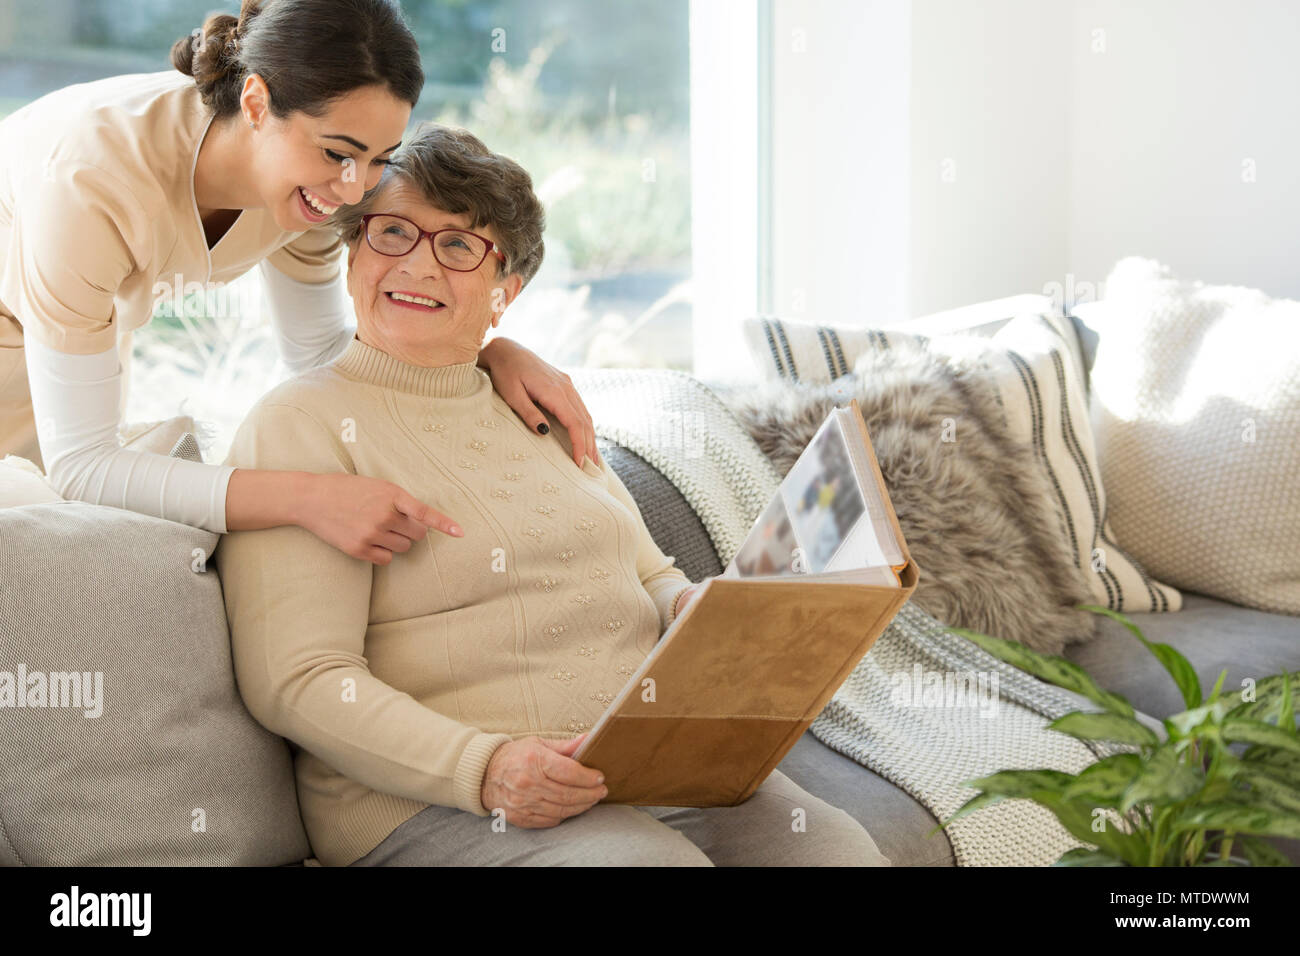 Grandmother sitting on a couch in a sunny room, looking at a photo album and sharing fond memories with a tender caregiver - Stock Image